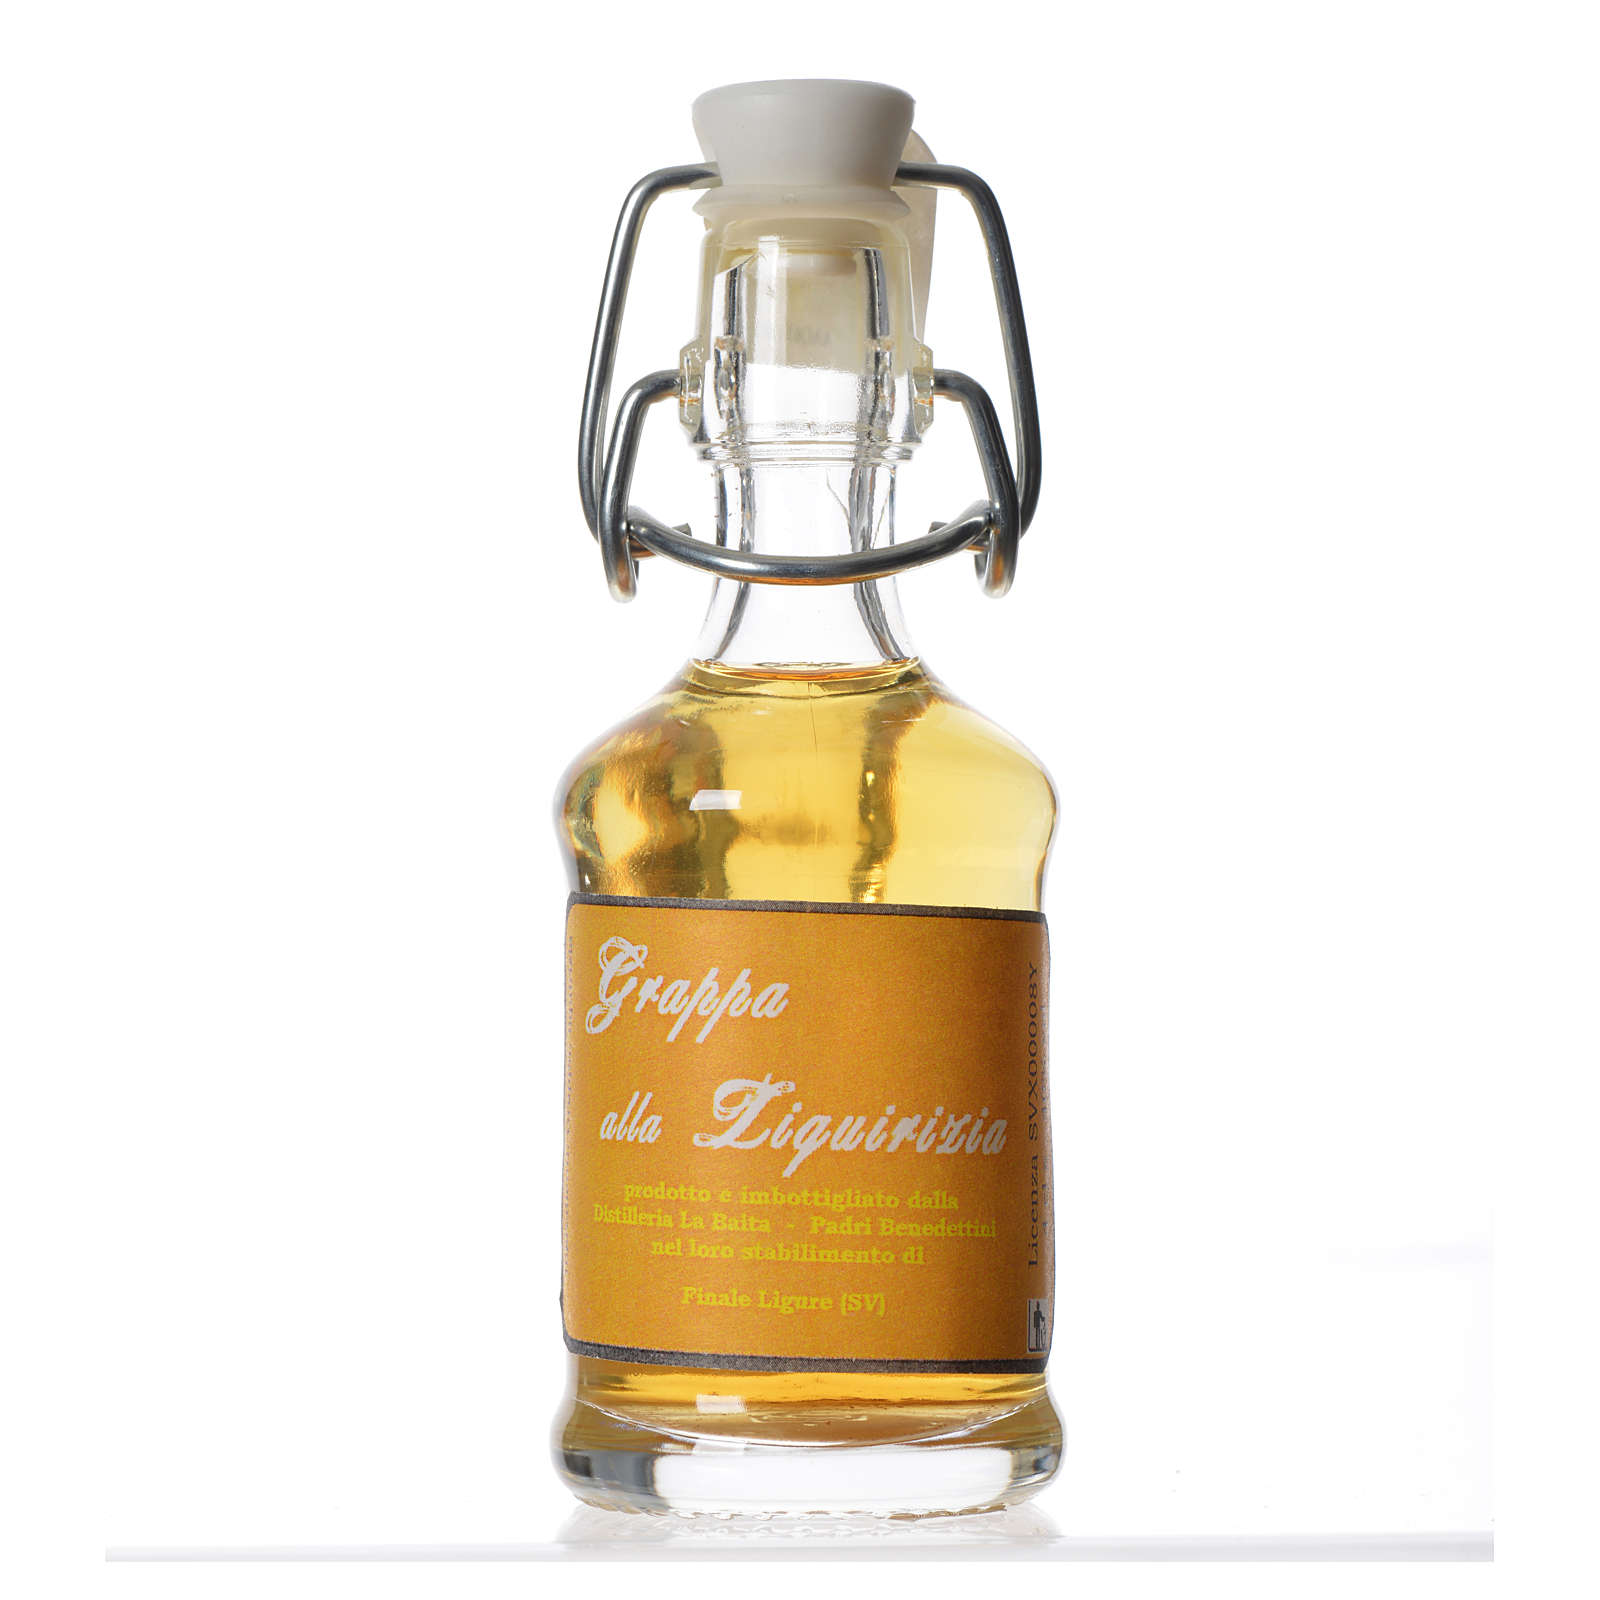 Grappa alla Liquirizia 40 ml Finale Ligure 3